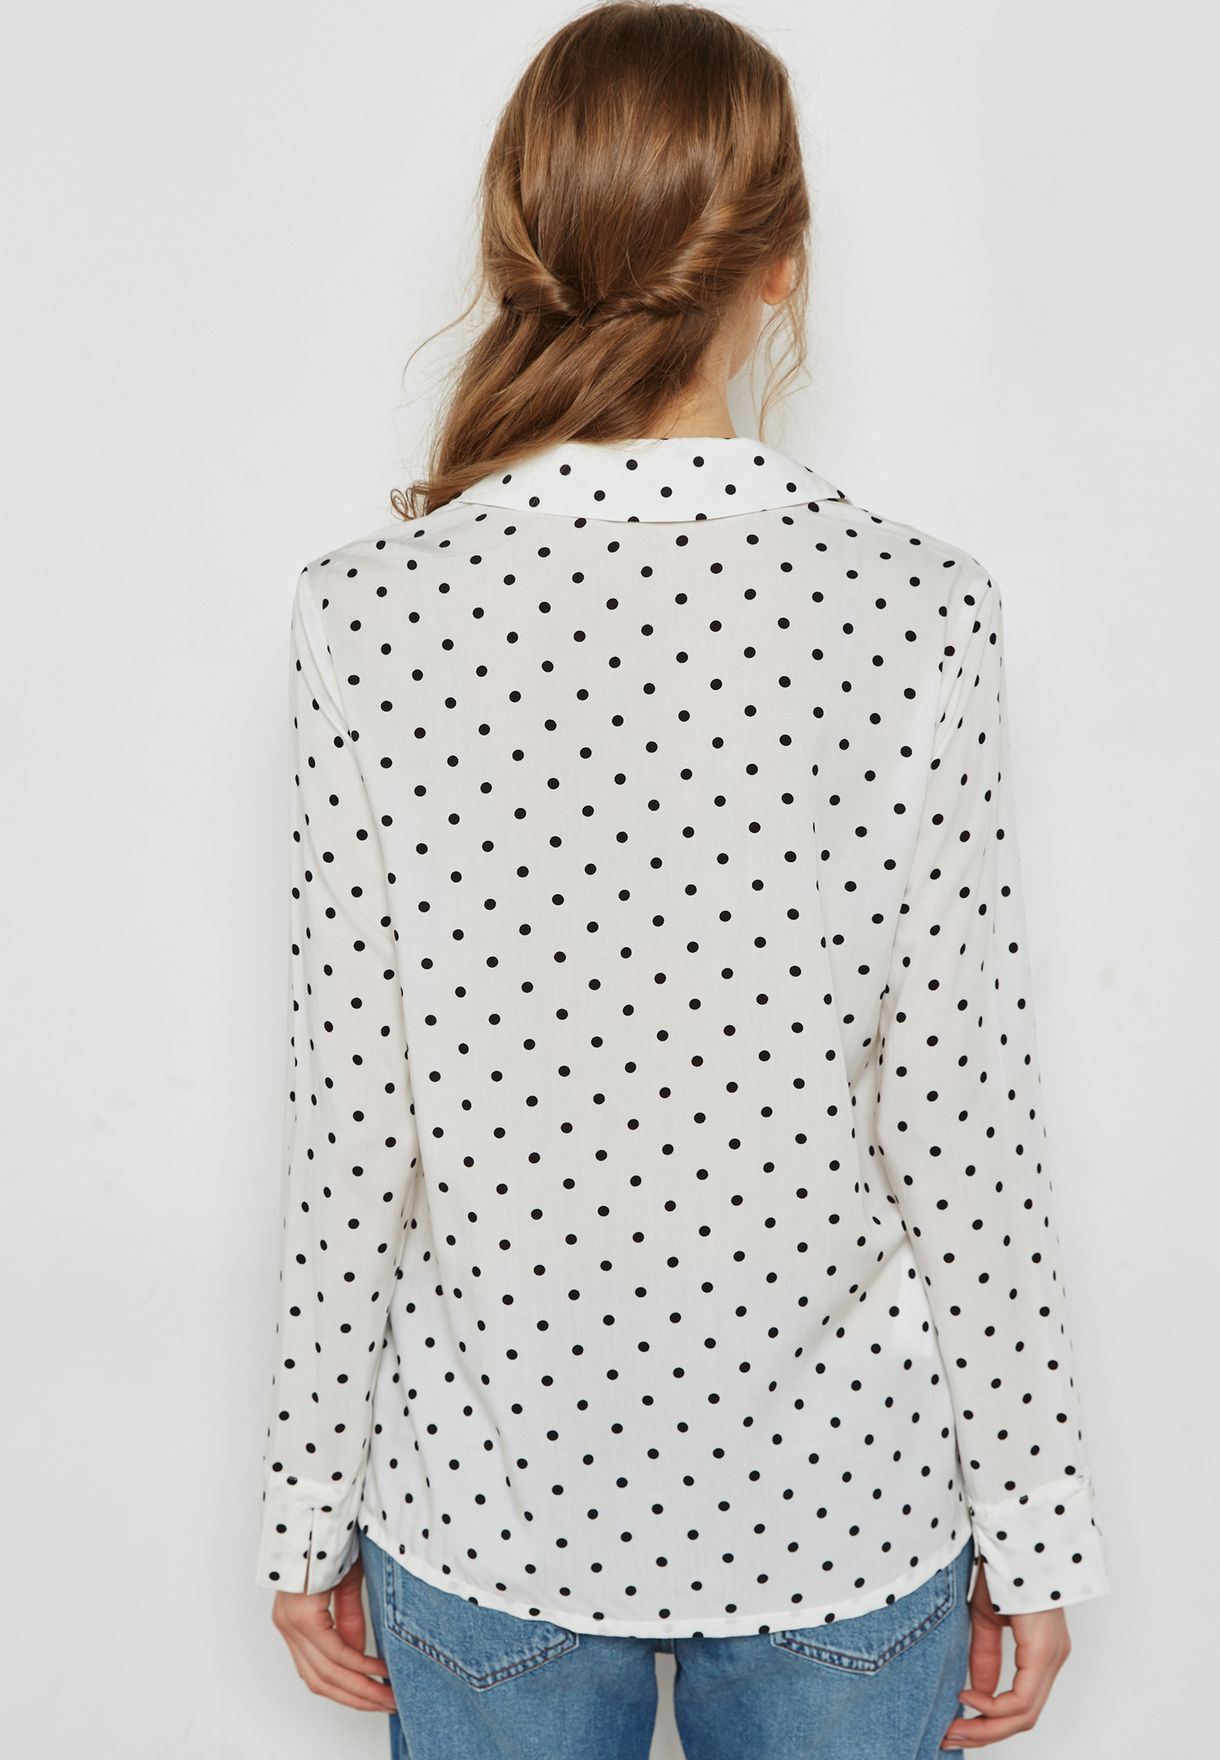 Polka Dot Printed Shirt